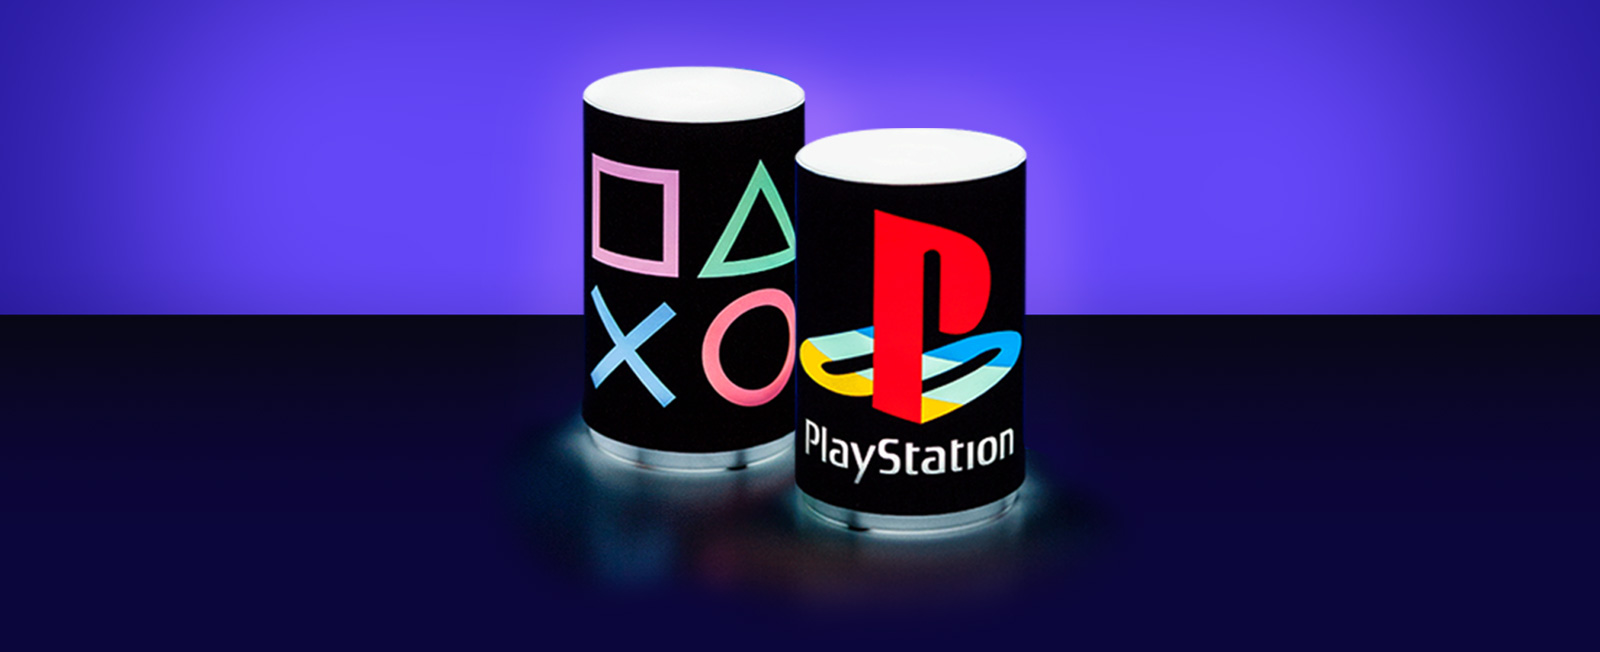 PlayStation Lamp